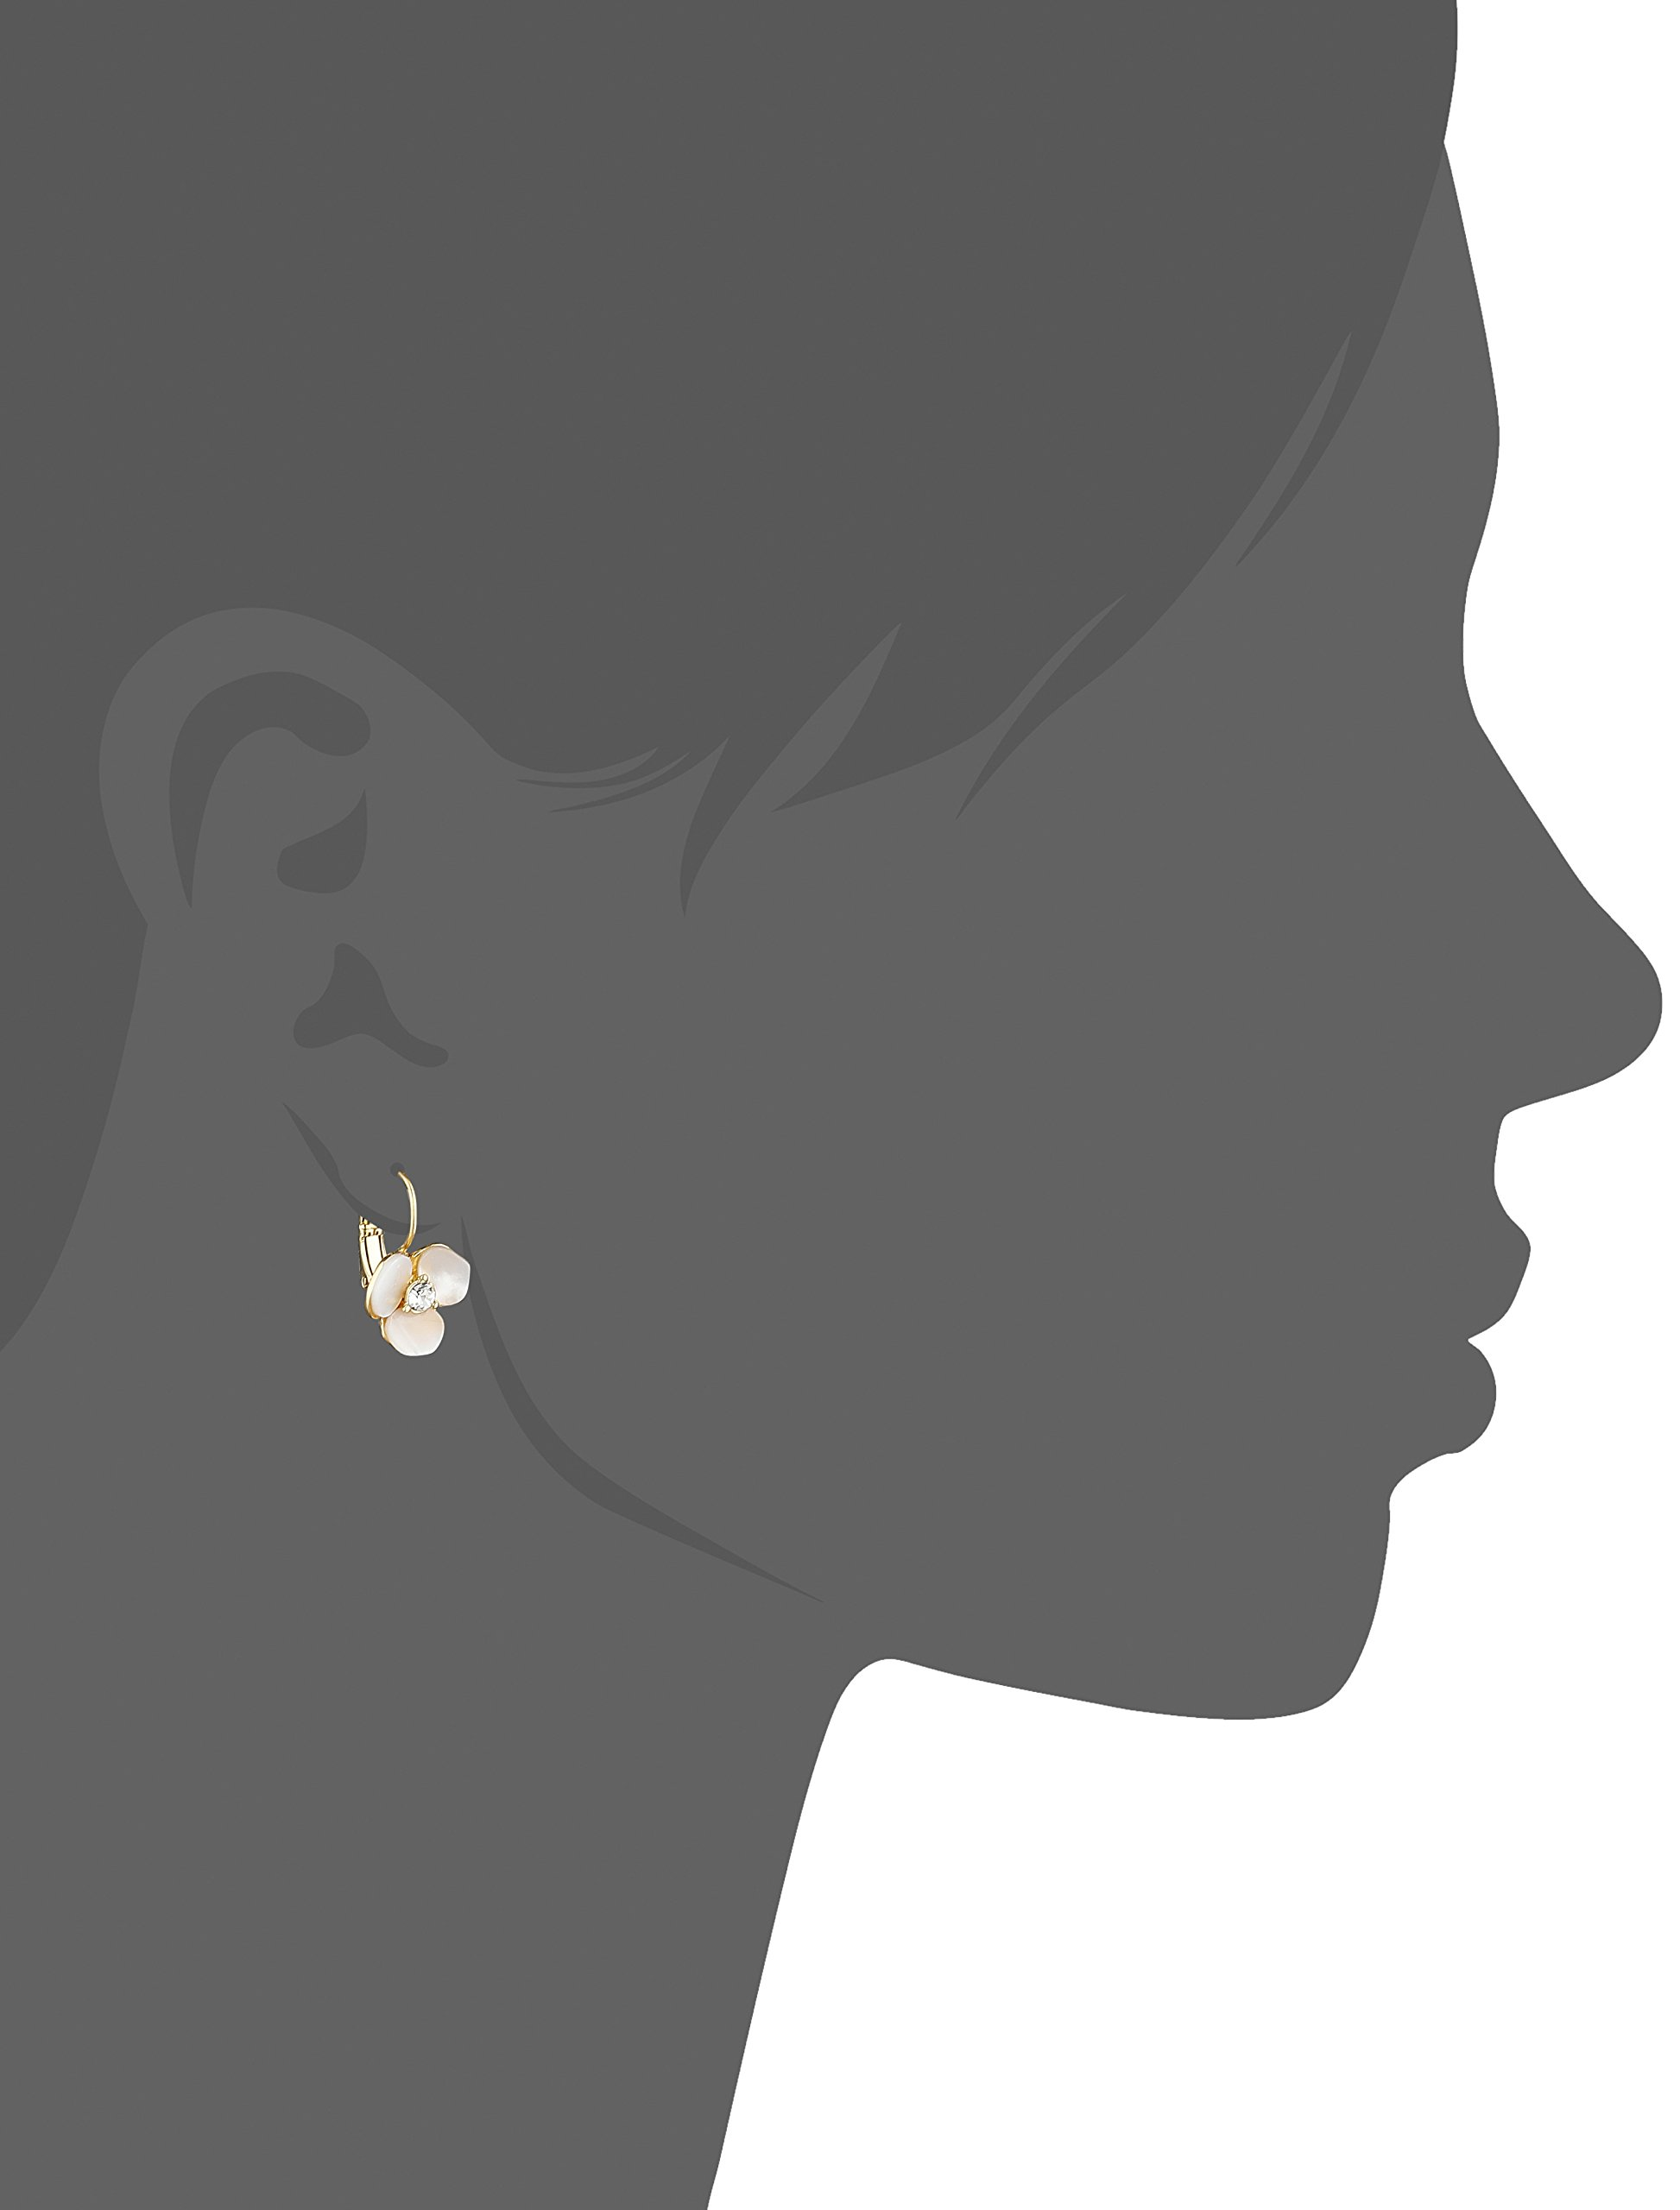 kate spade new york Disco Pansy Leverbacks Earrings by Kate Spade New York (Image #2)